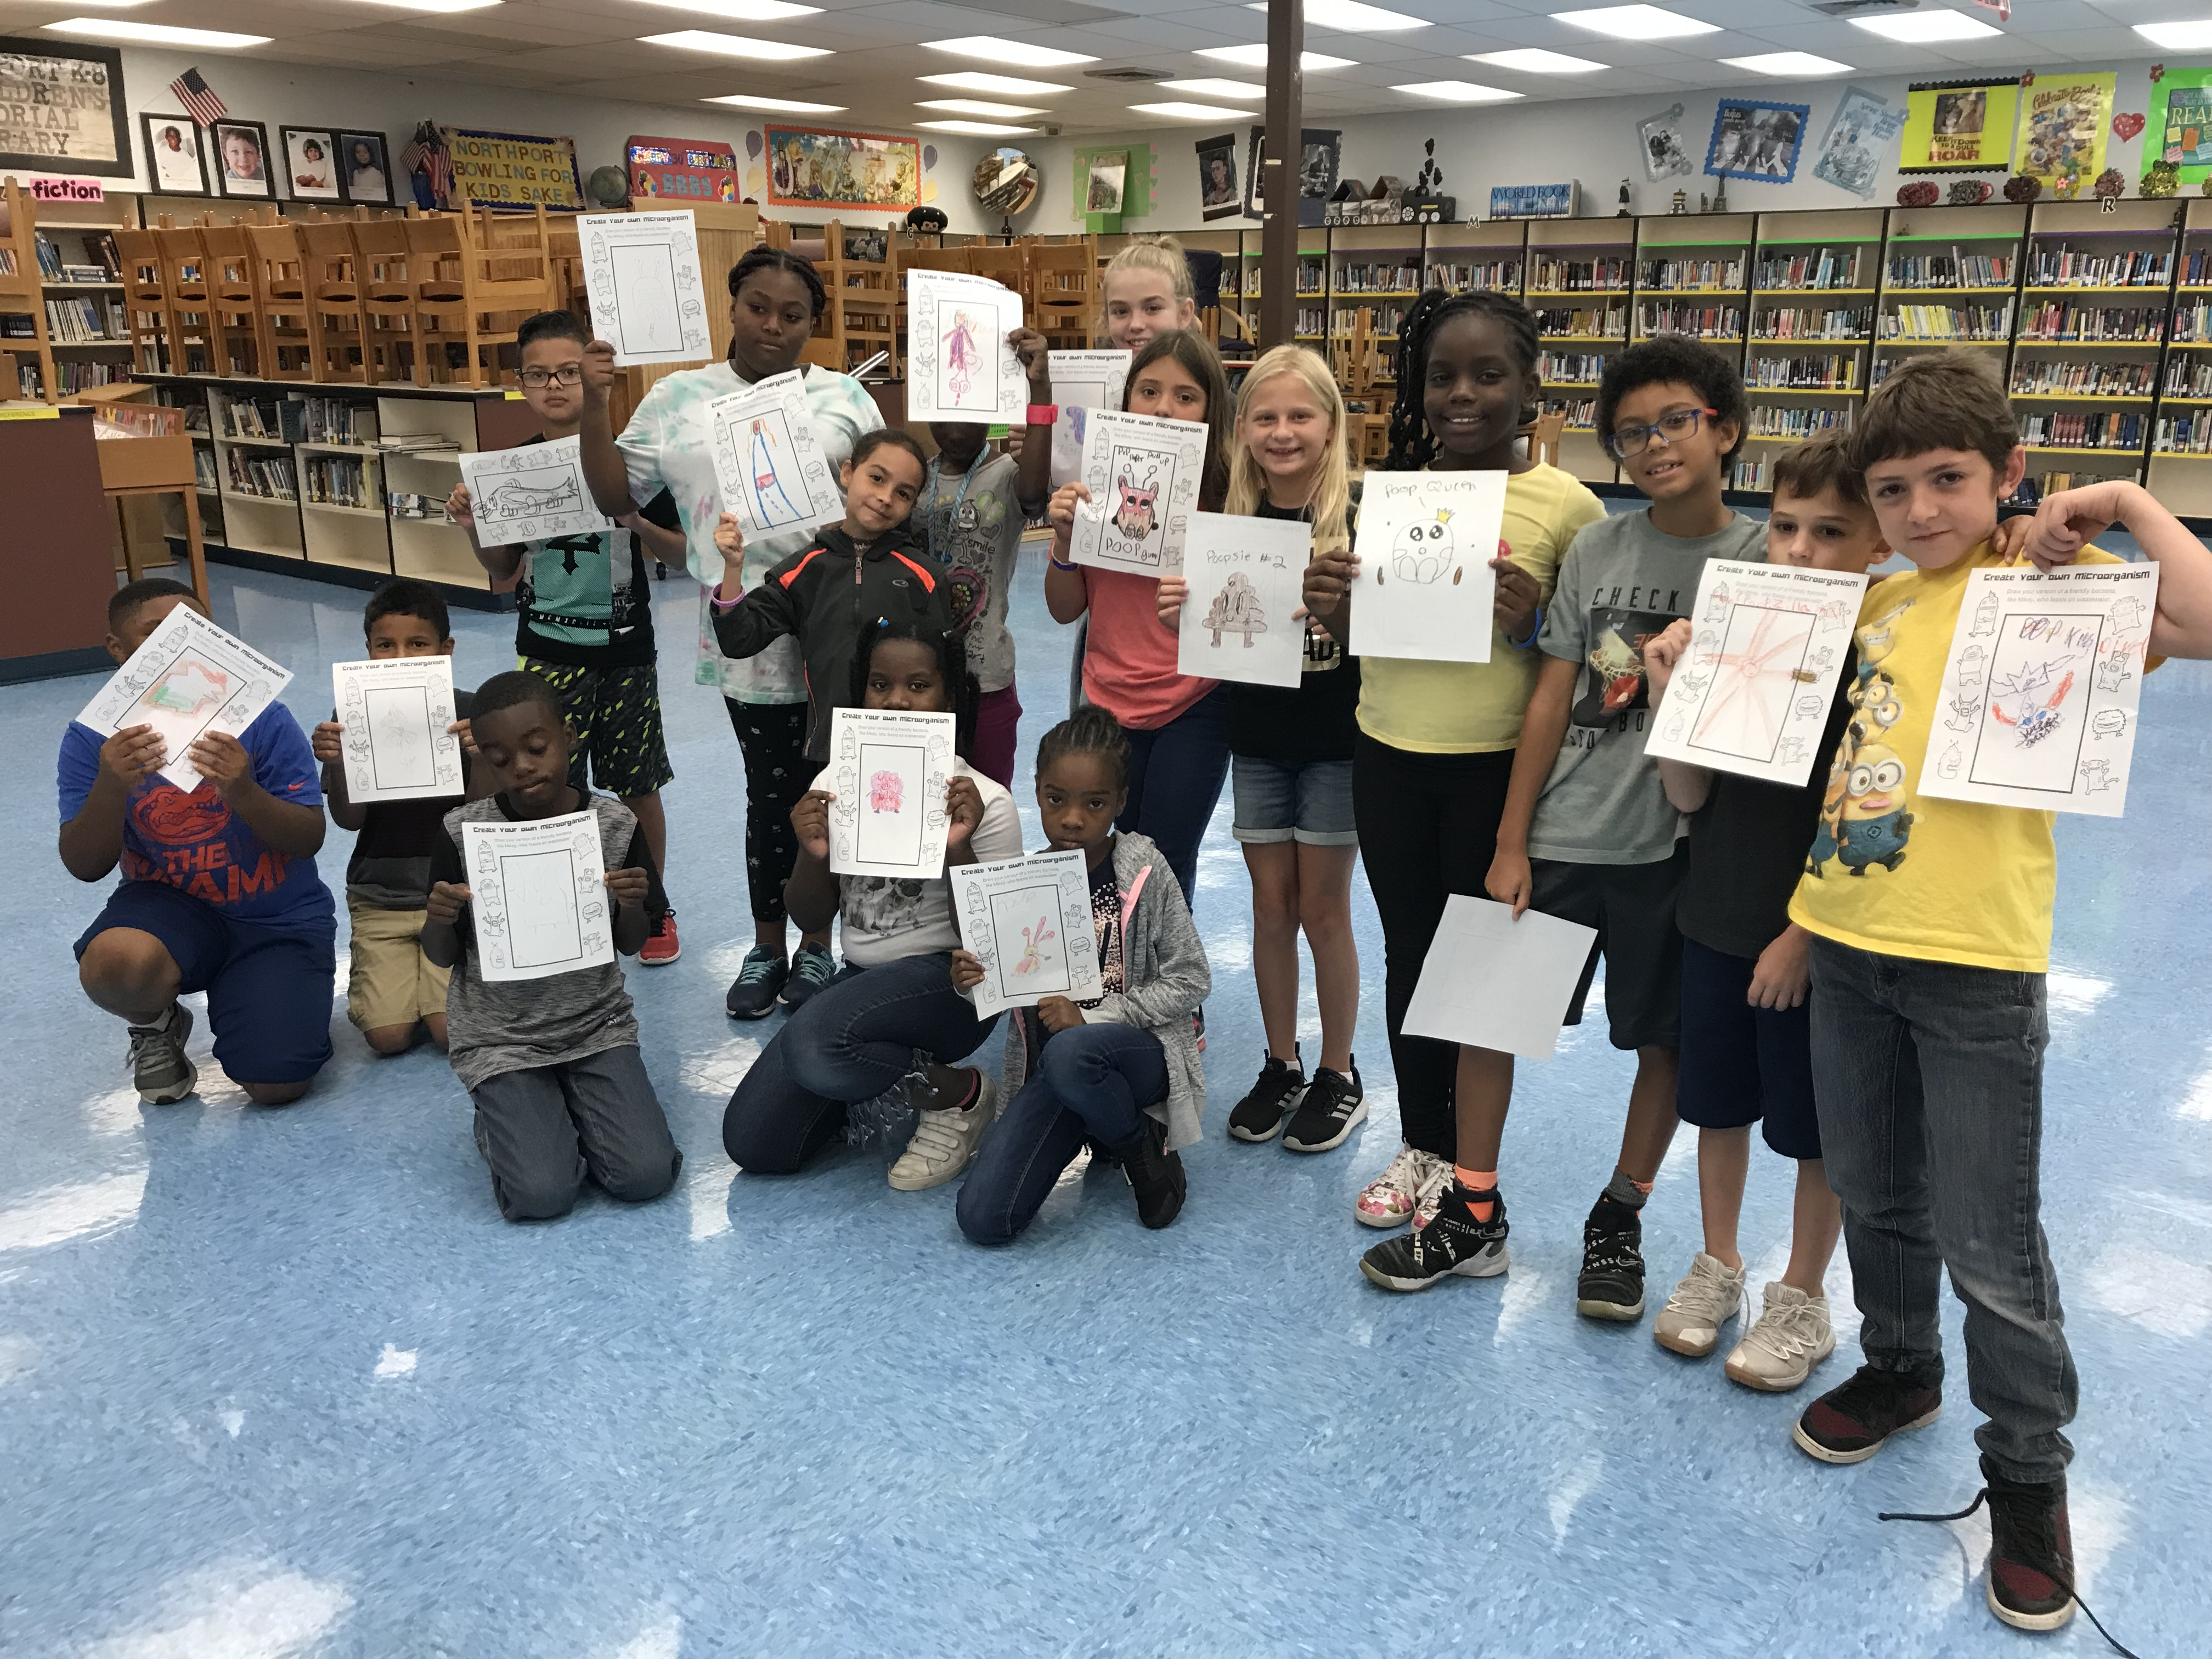 Group of kids show off their microorganism drawings